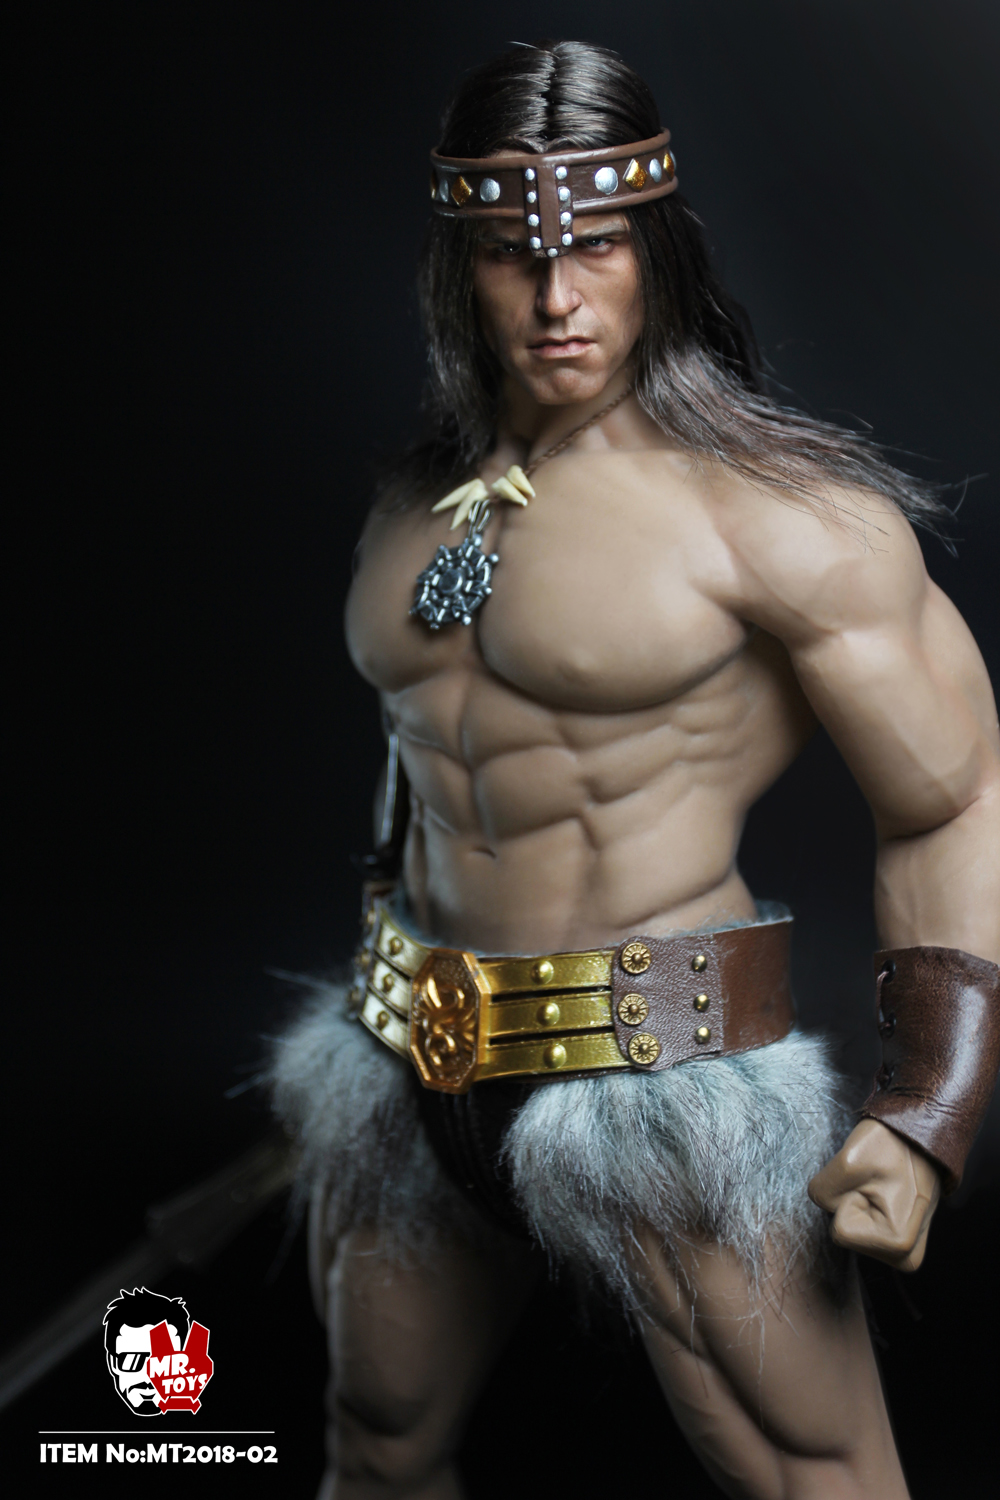 NEW PRODUCT:  Mr. Toys MT2018-02 1/6 Conan head carving costume set O1cn0121